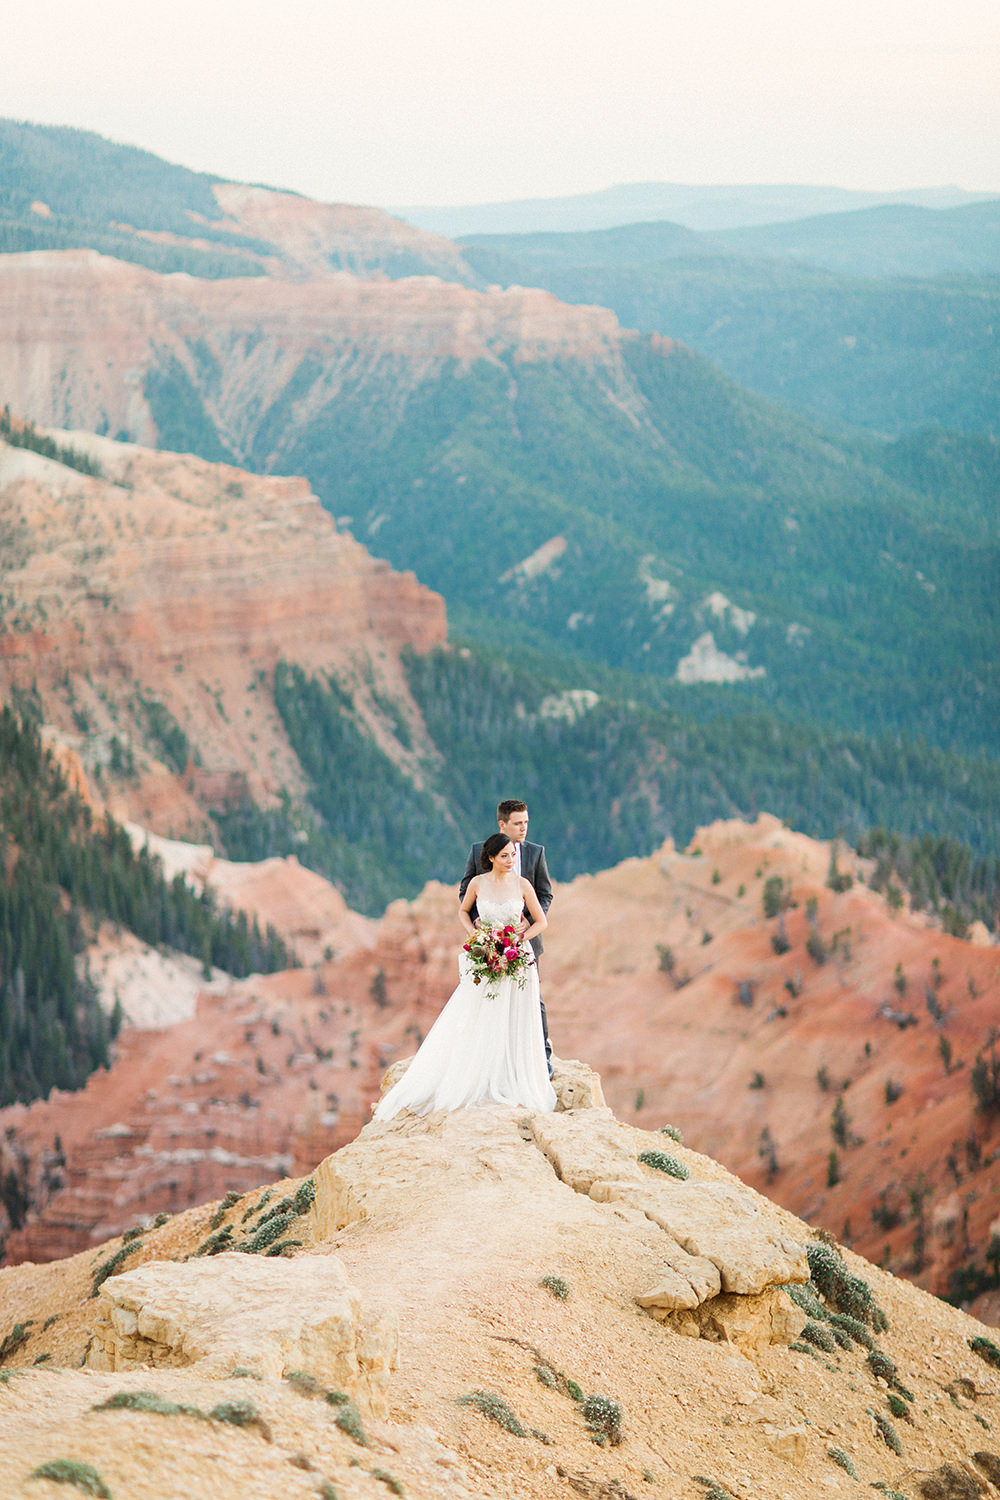 Botanical Wedding Ideas in the Mountains of Southern Utah - photo by Gideon Photography https://ruffledblog.com/botanical-wedding-ideas-in-the-mountains-of-southern-utah